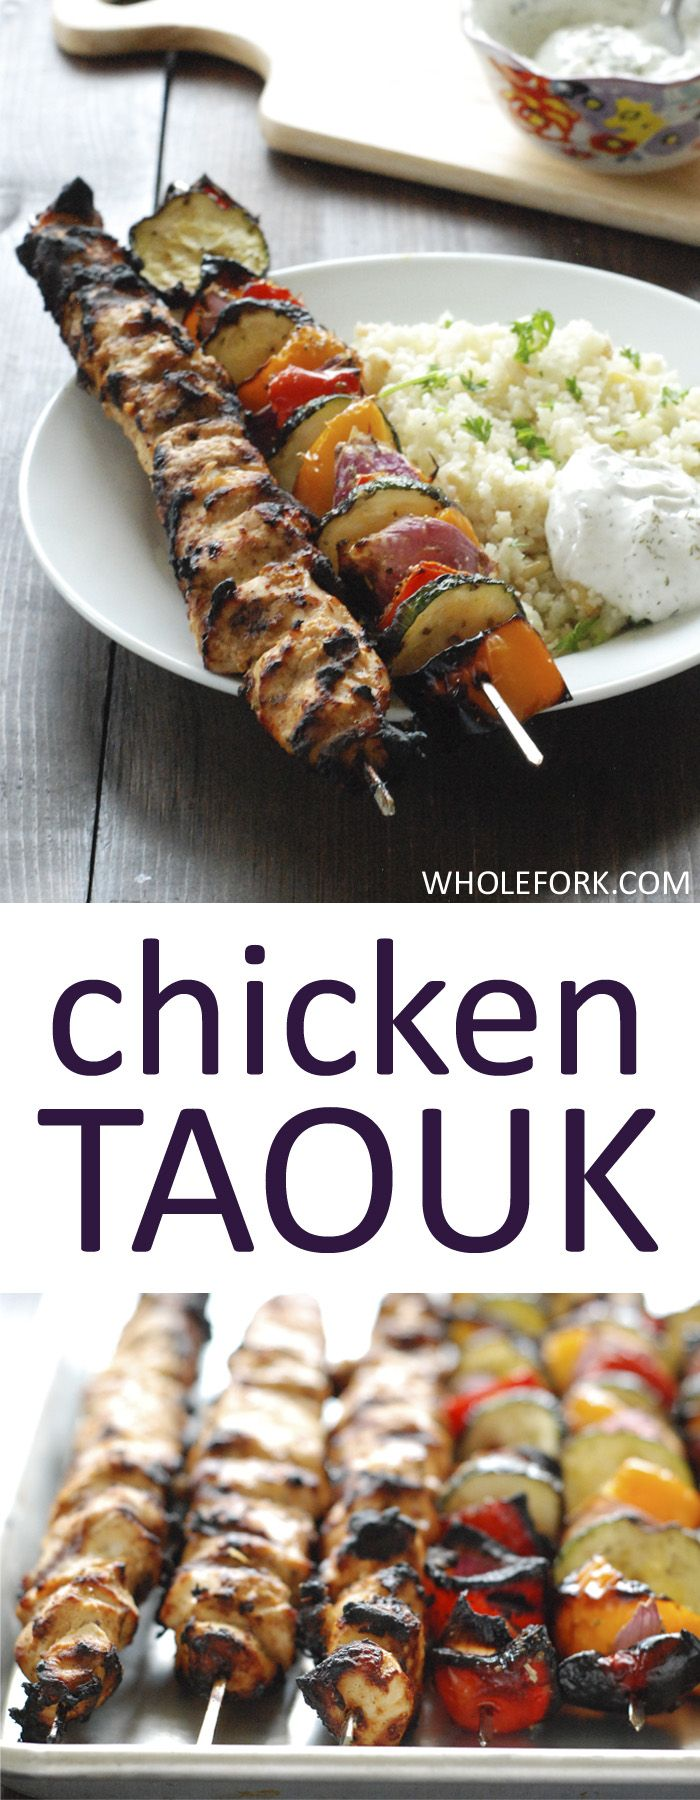 Turkish Chicken Taouk -  Turkish Shish Kebab marinated in Greek yogurt sauce, then grilled to add a hint of smoke and served with grilled veggies. The perfect summer meal on the grill!